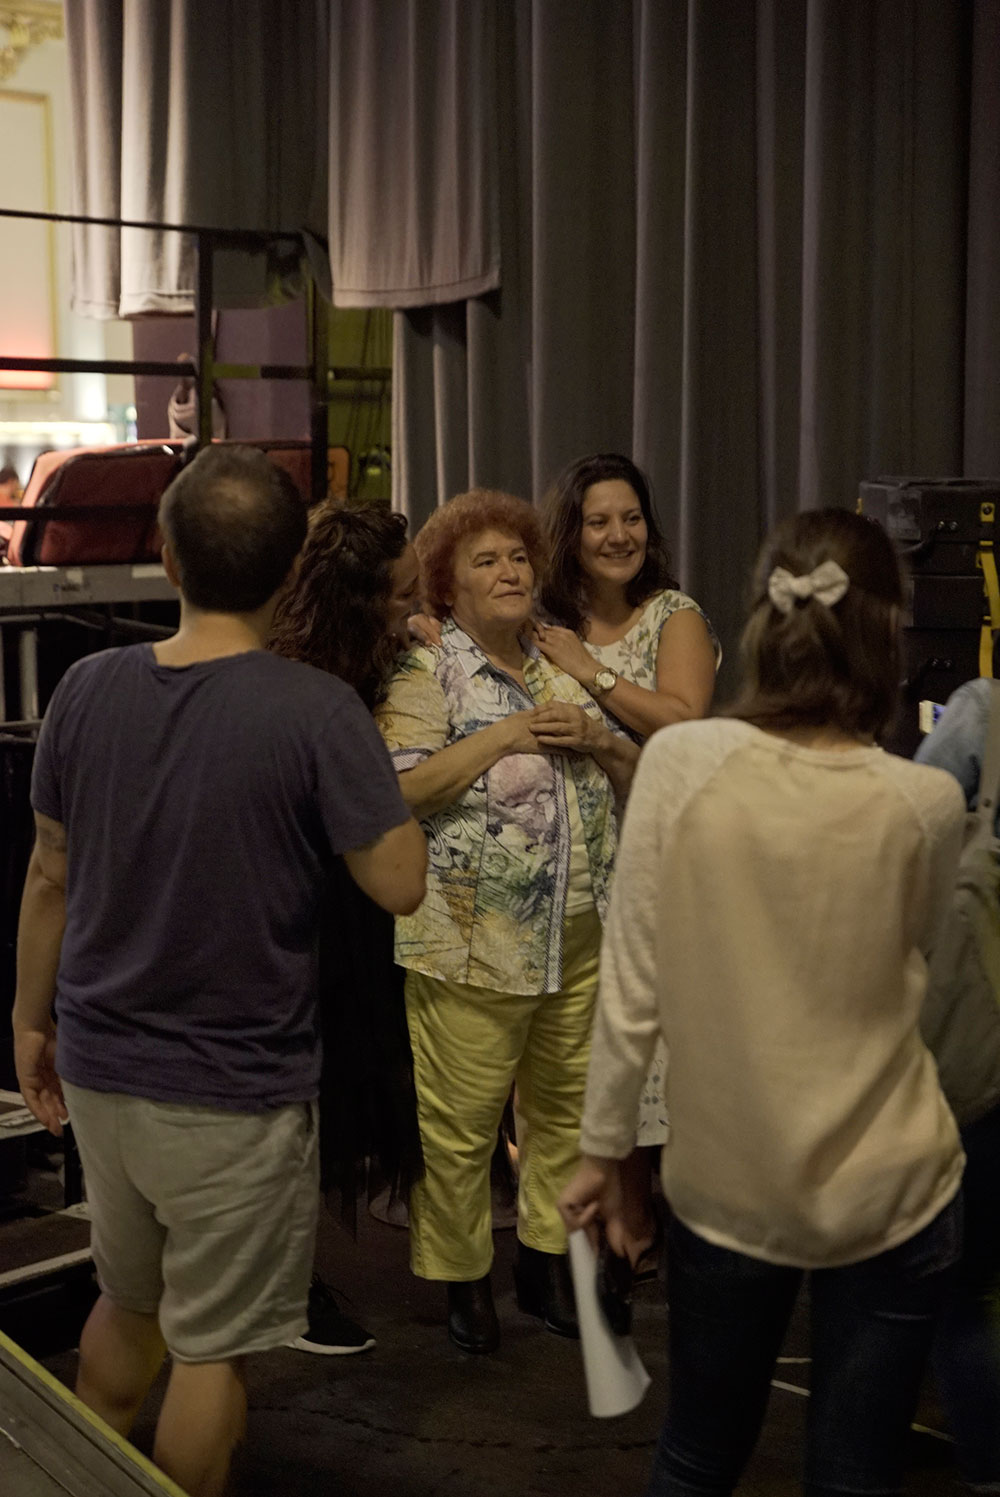 Selda Bağcan & Fans at Pop-Kultur Festival by Thomas Venker